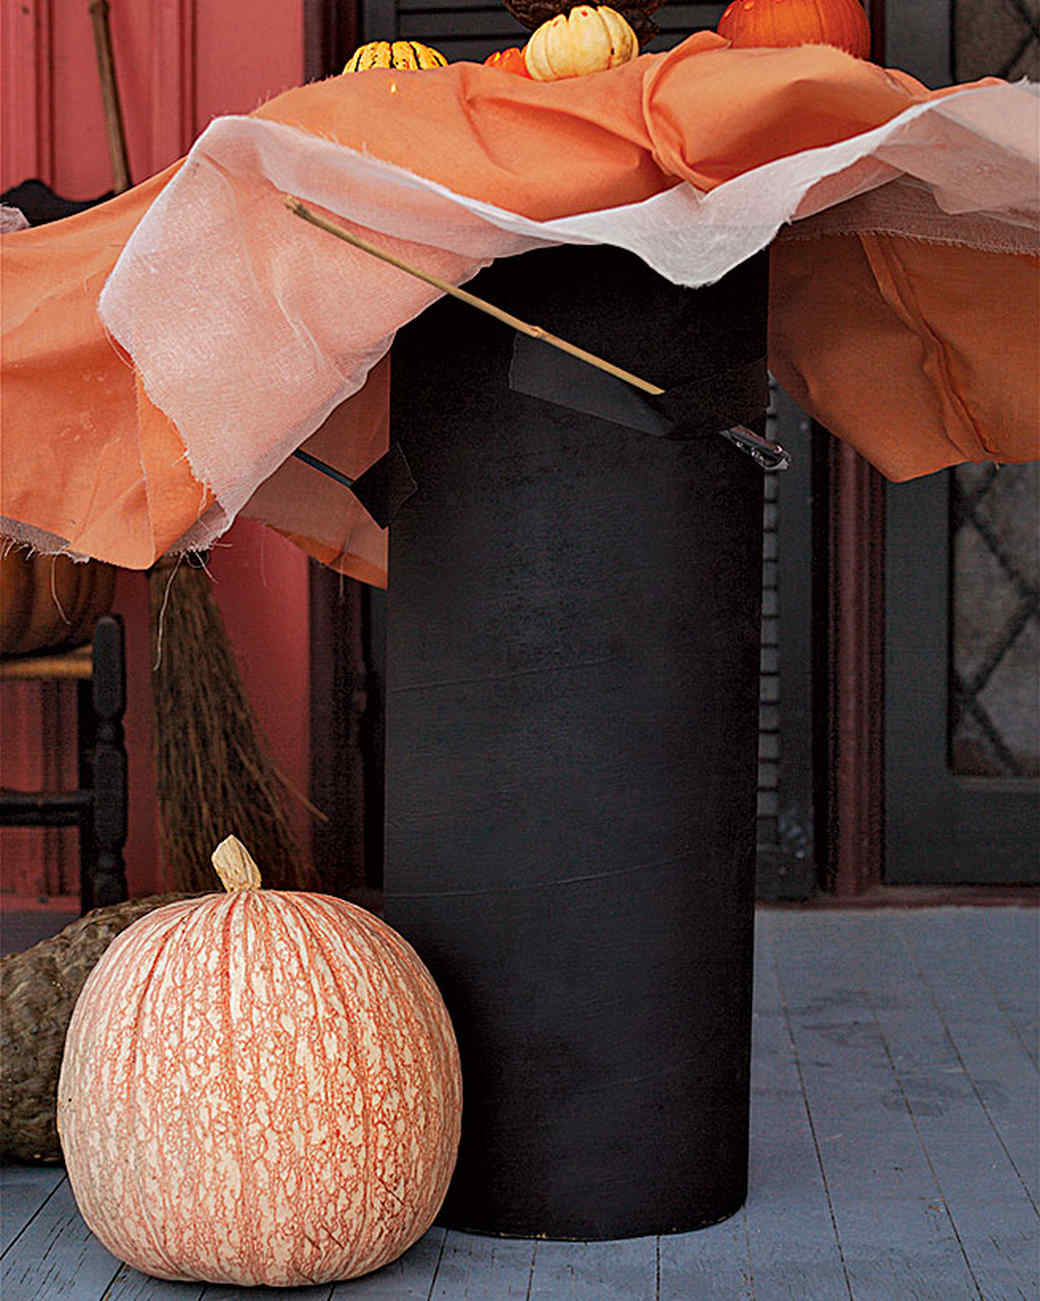 levitating halloween table and treats martha stewart ready to make your own levitating table and treats learn how to create this enchanting illusion